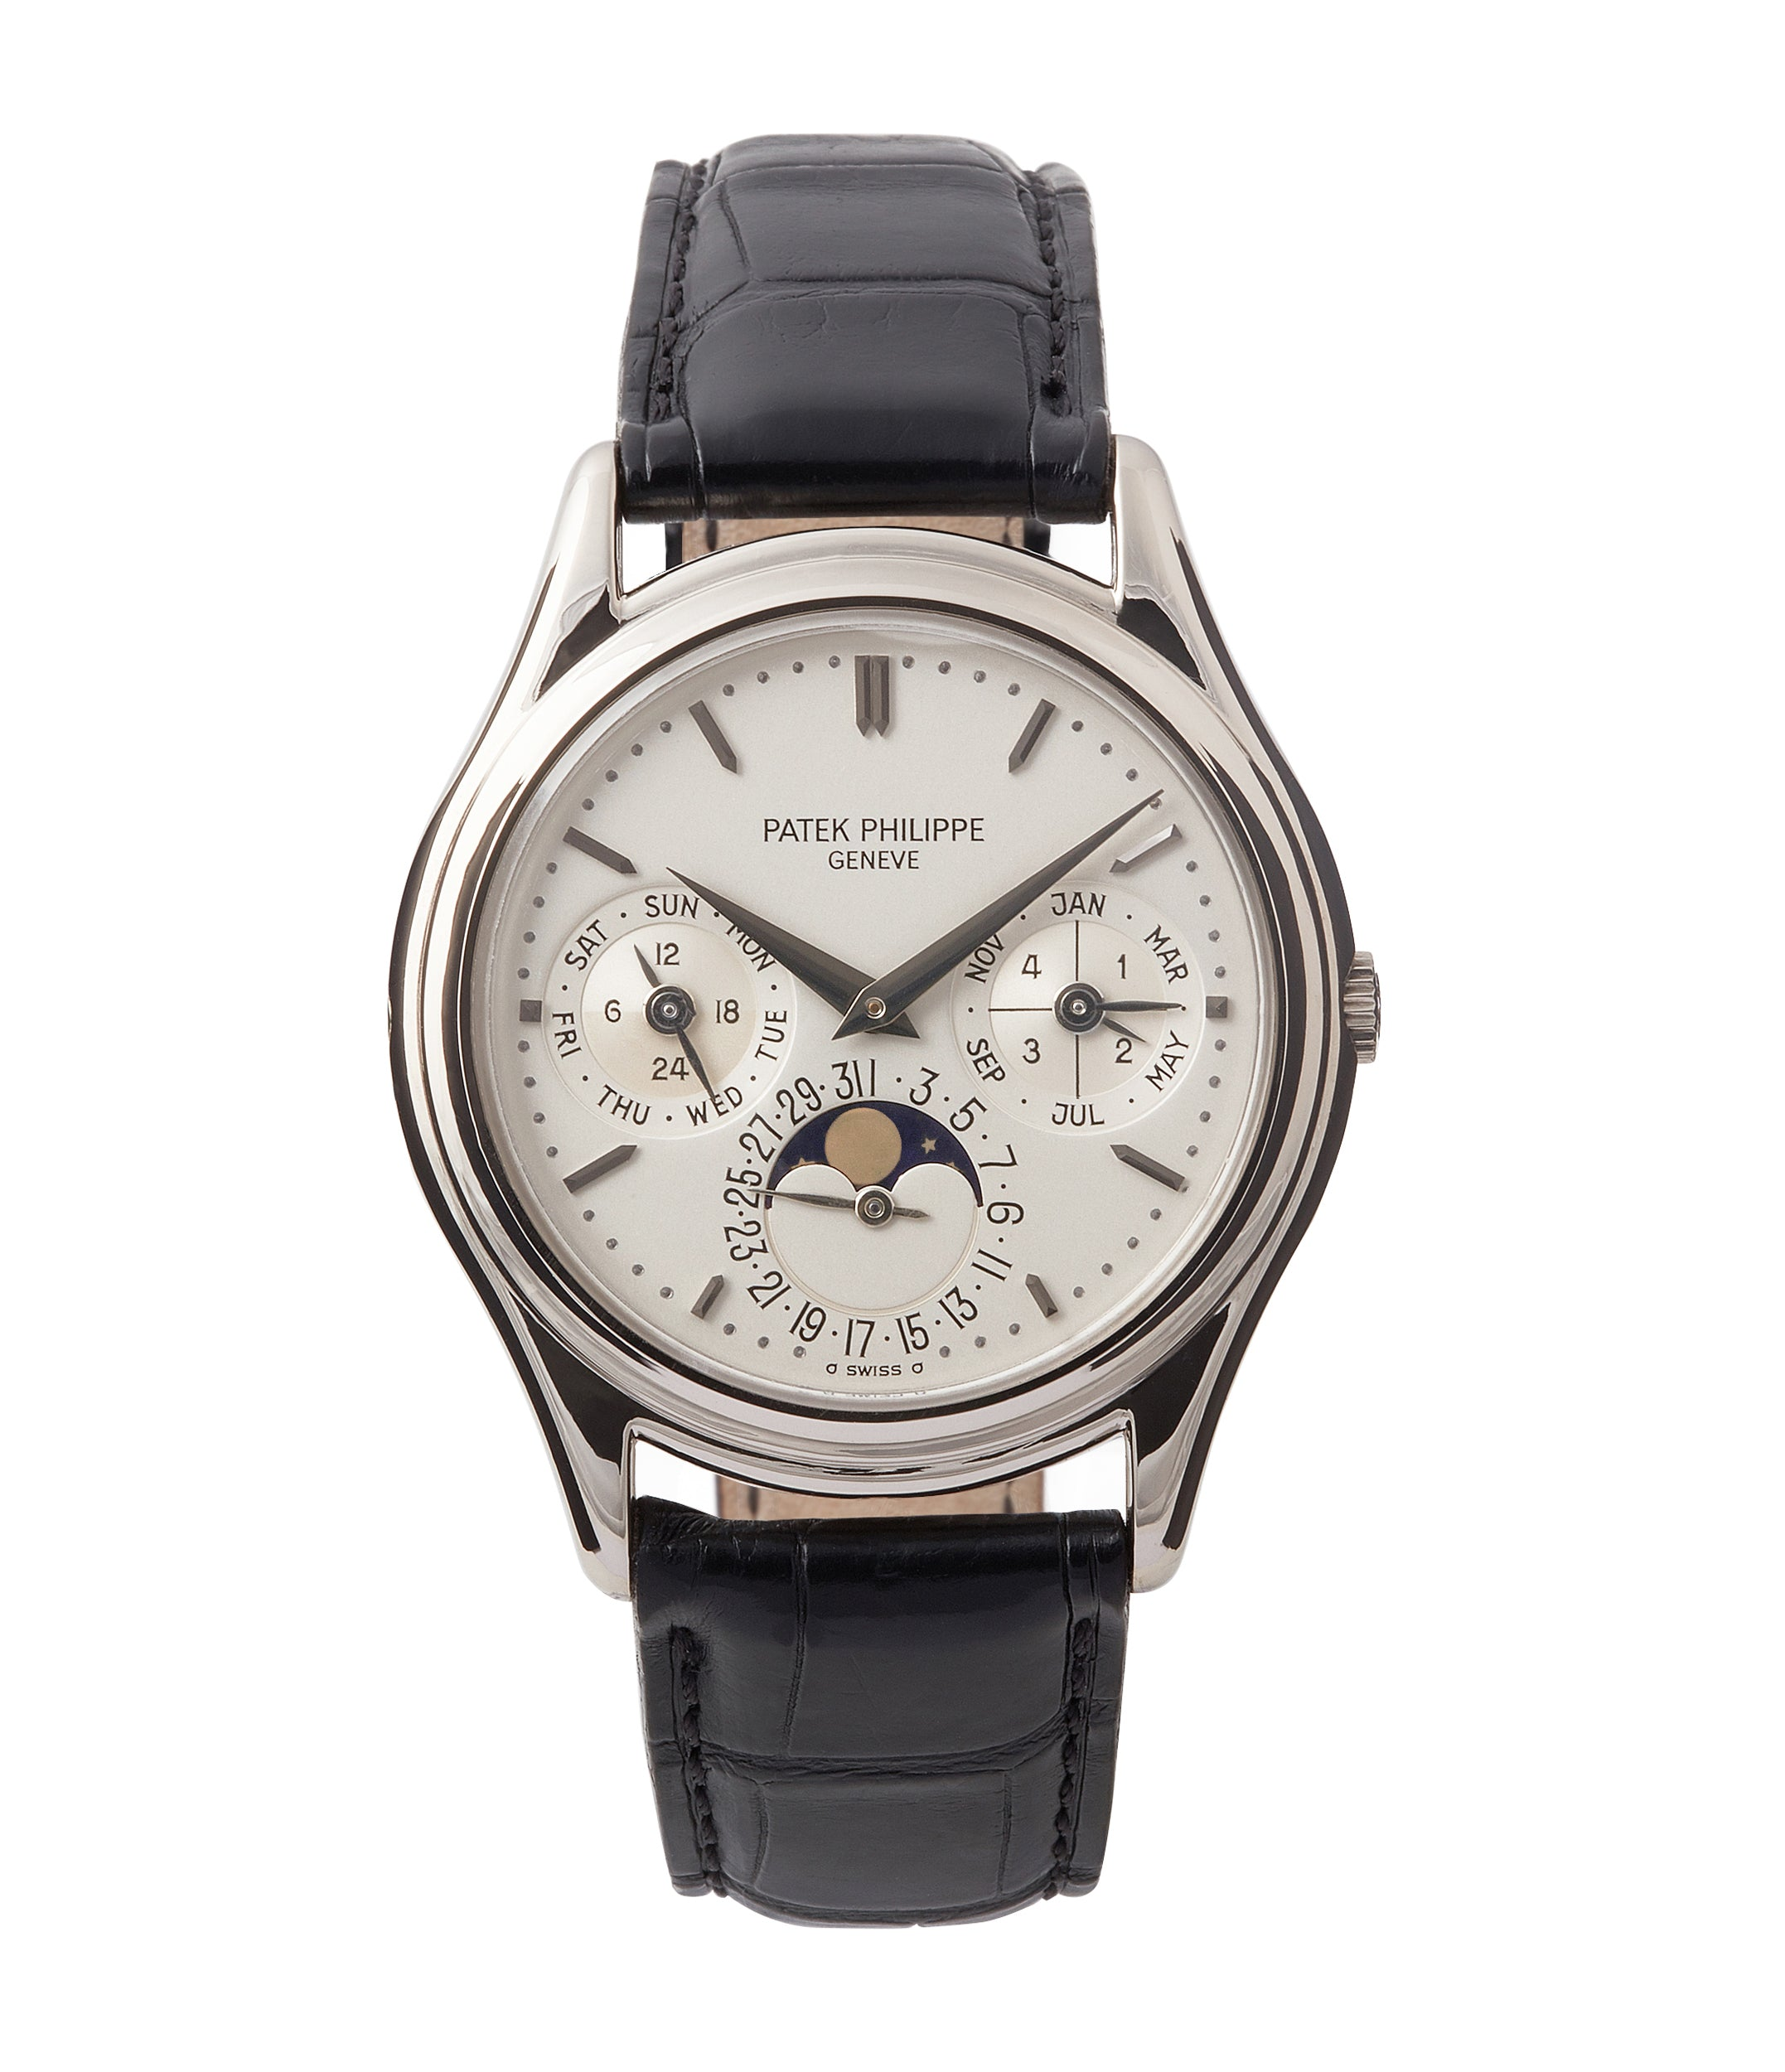 buy Patek Philippe 3940G Perpetual Calendar vintage rare watch English dial for sale online at A Collected Man London UK specialist of rare watches